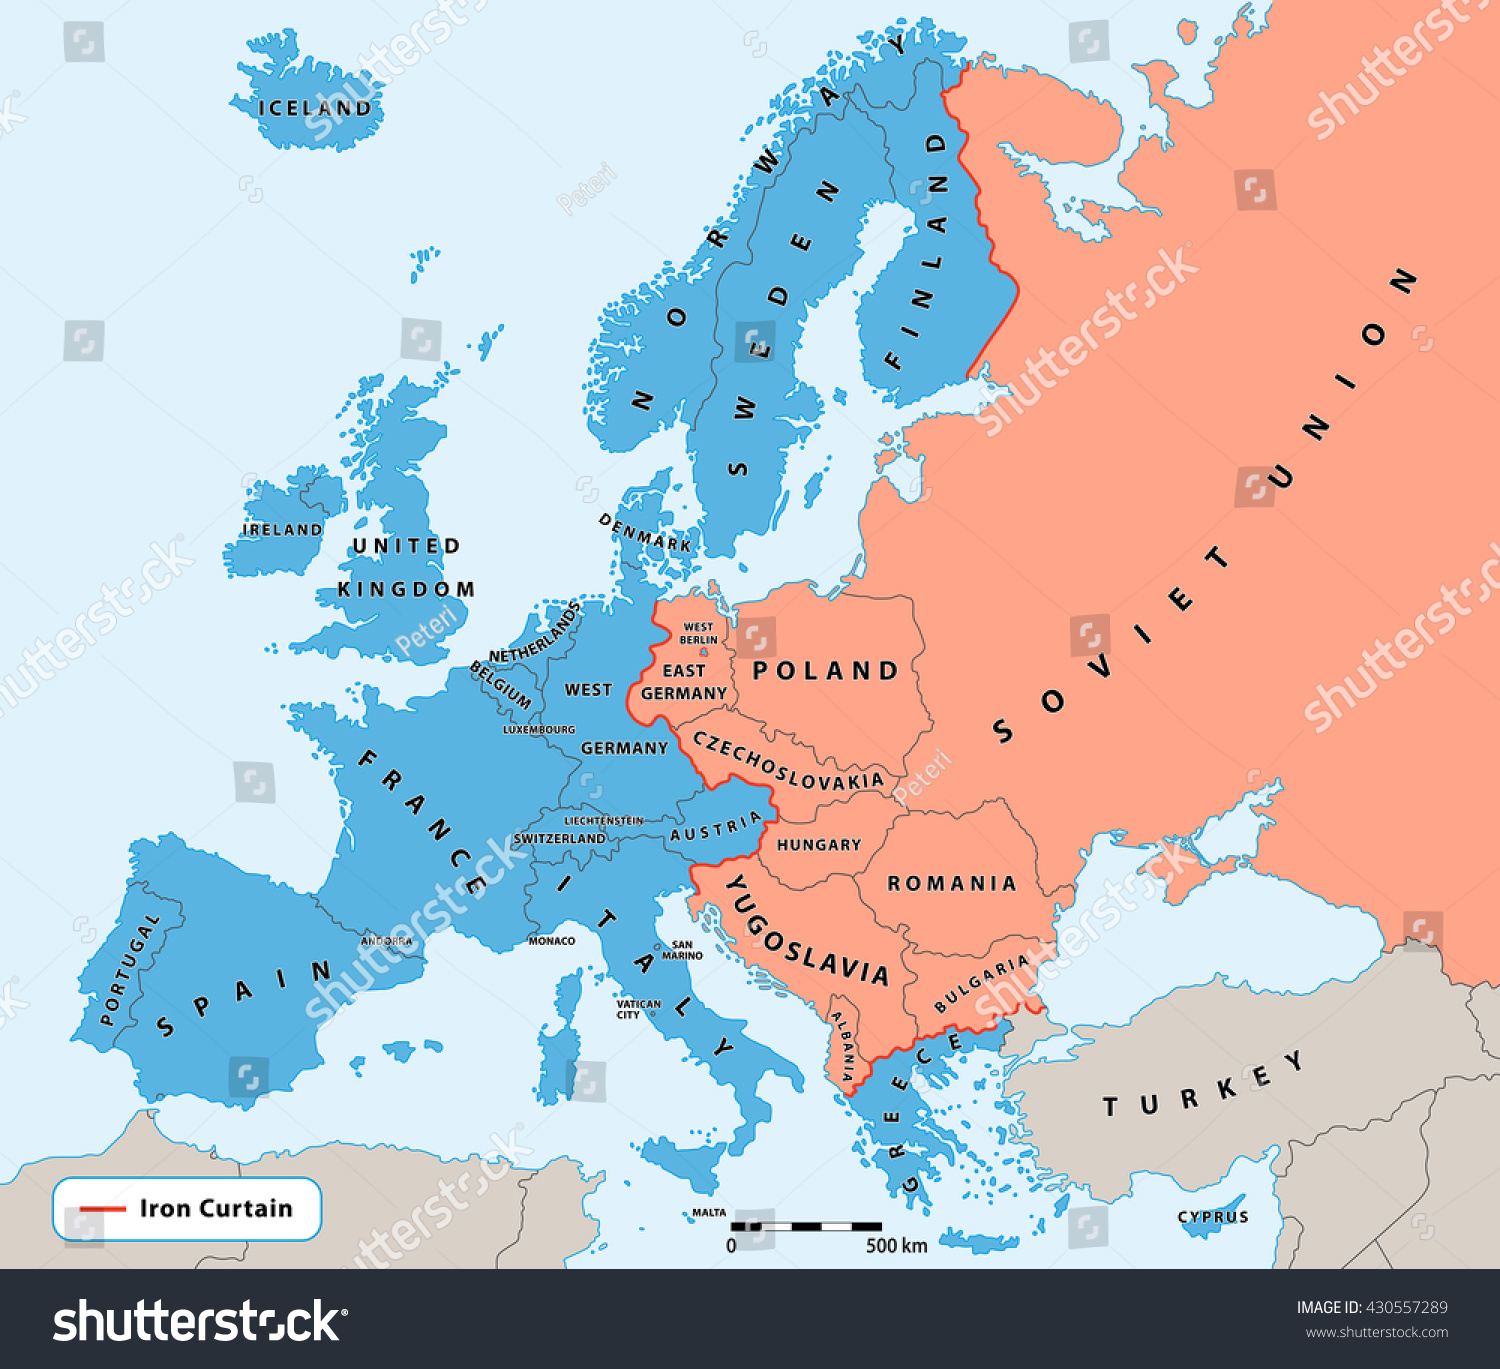 The iron curtain map - Iron Curtain Cold War Era On Europe Political Map Divided Europe In Years 1945